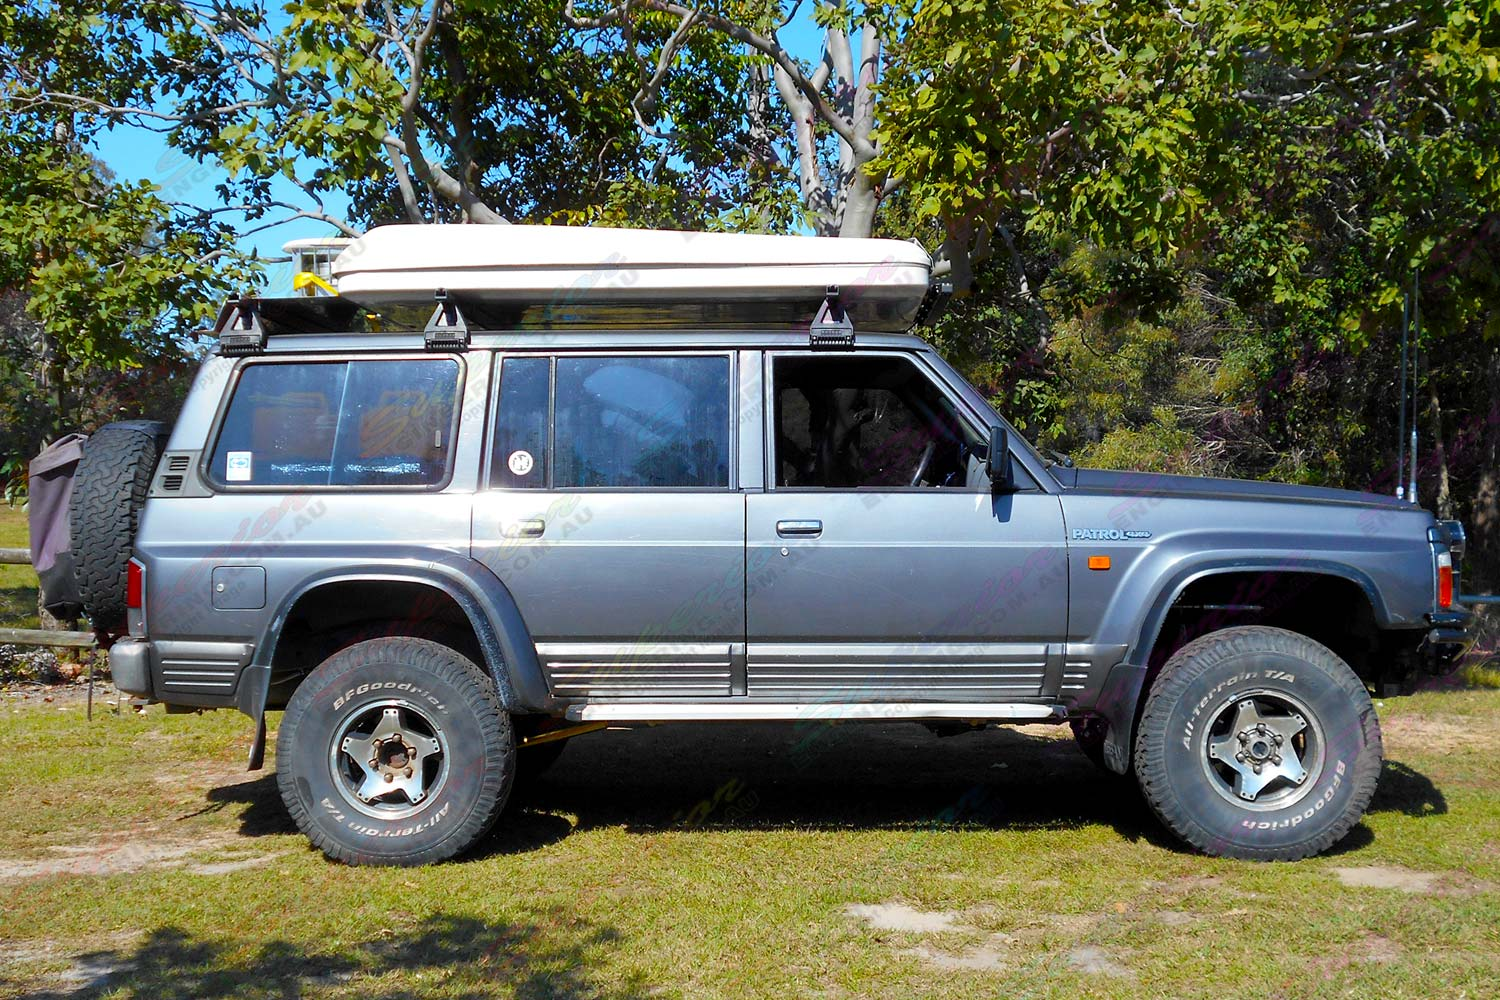 """Right side view of a GQ Nissan Patrol Wagon fitted with a 3"""" inch AmadaXtreme Explorer 11 Superflex lift kit"""